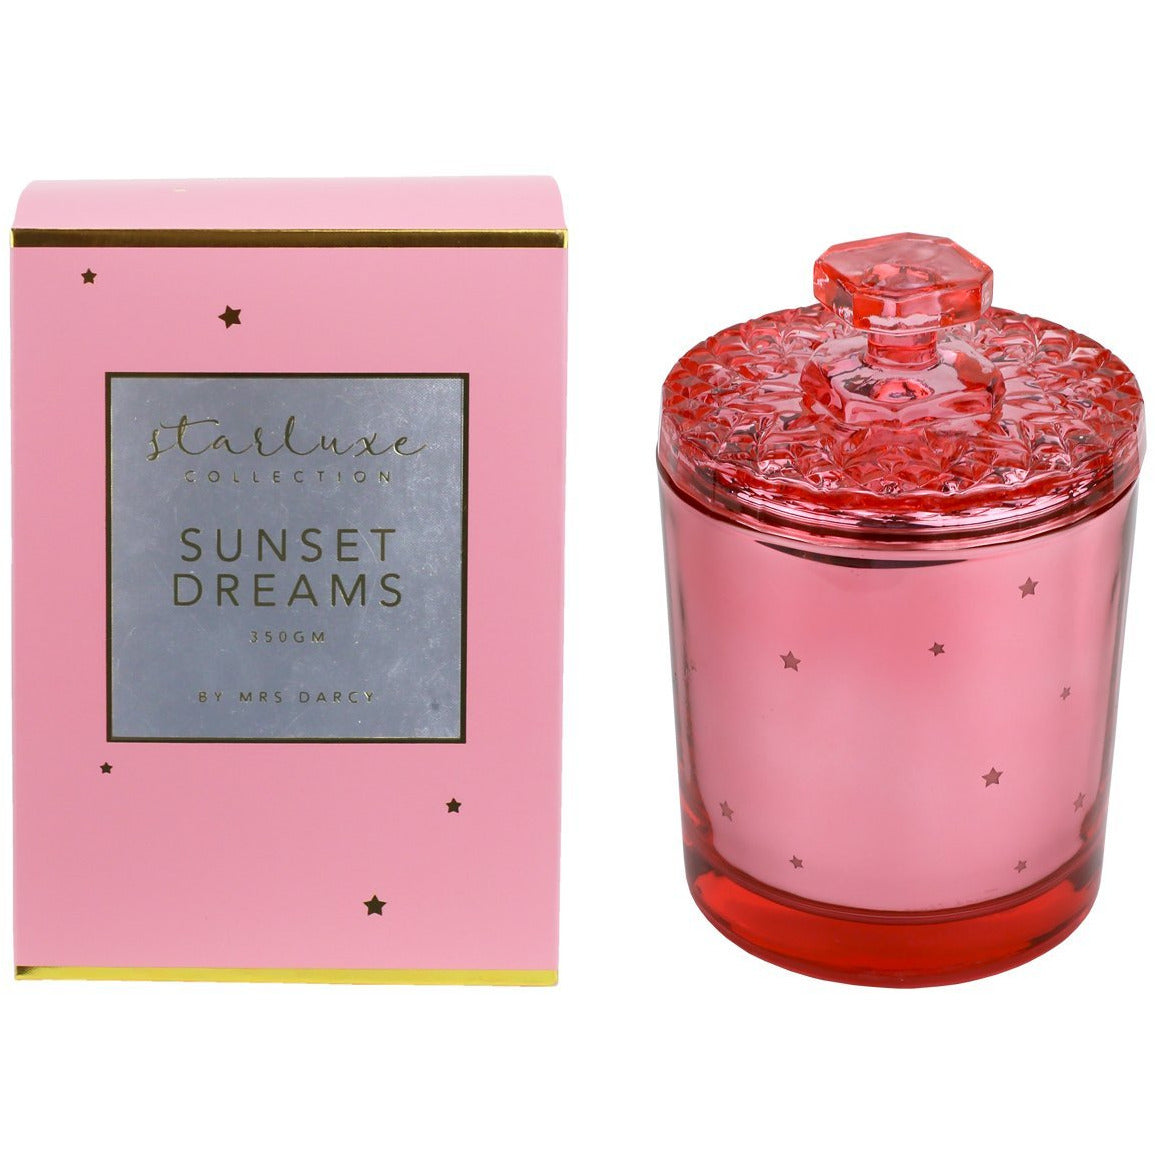 StarLuxe Sunset Dreams Candle